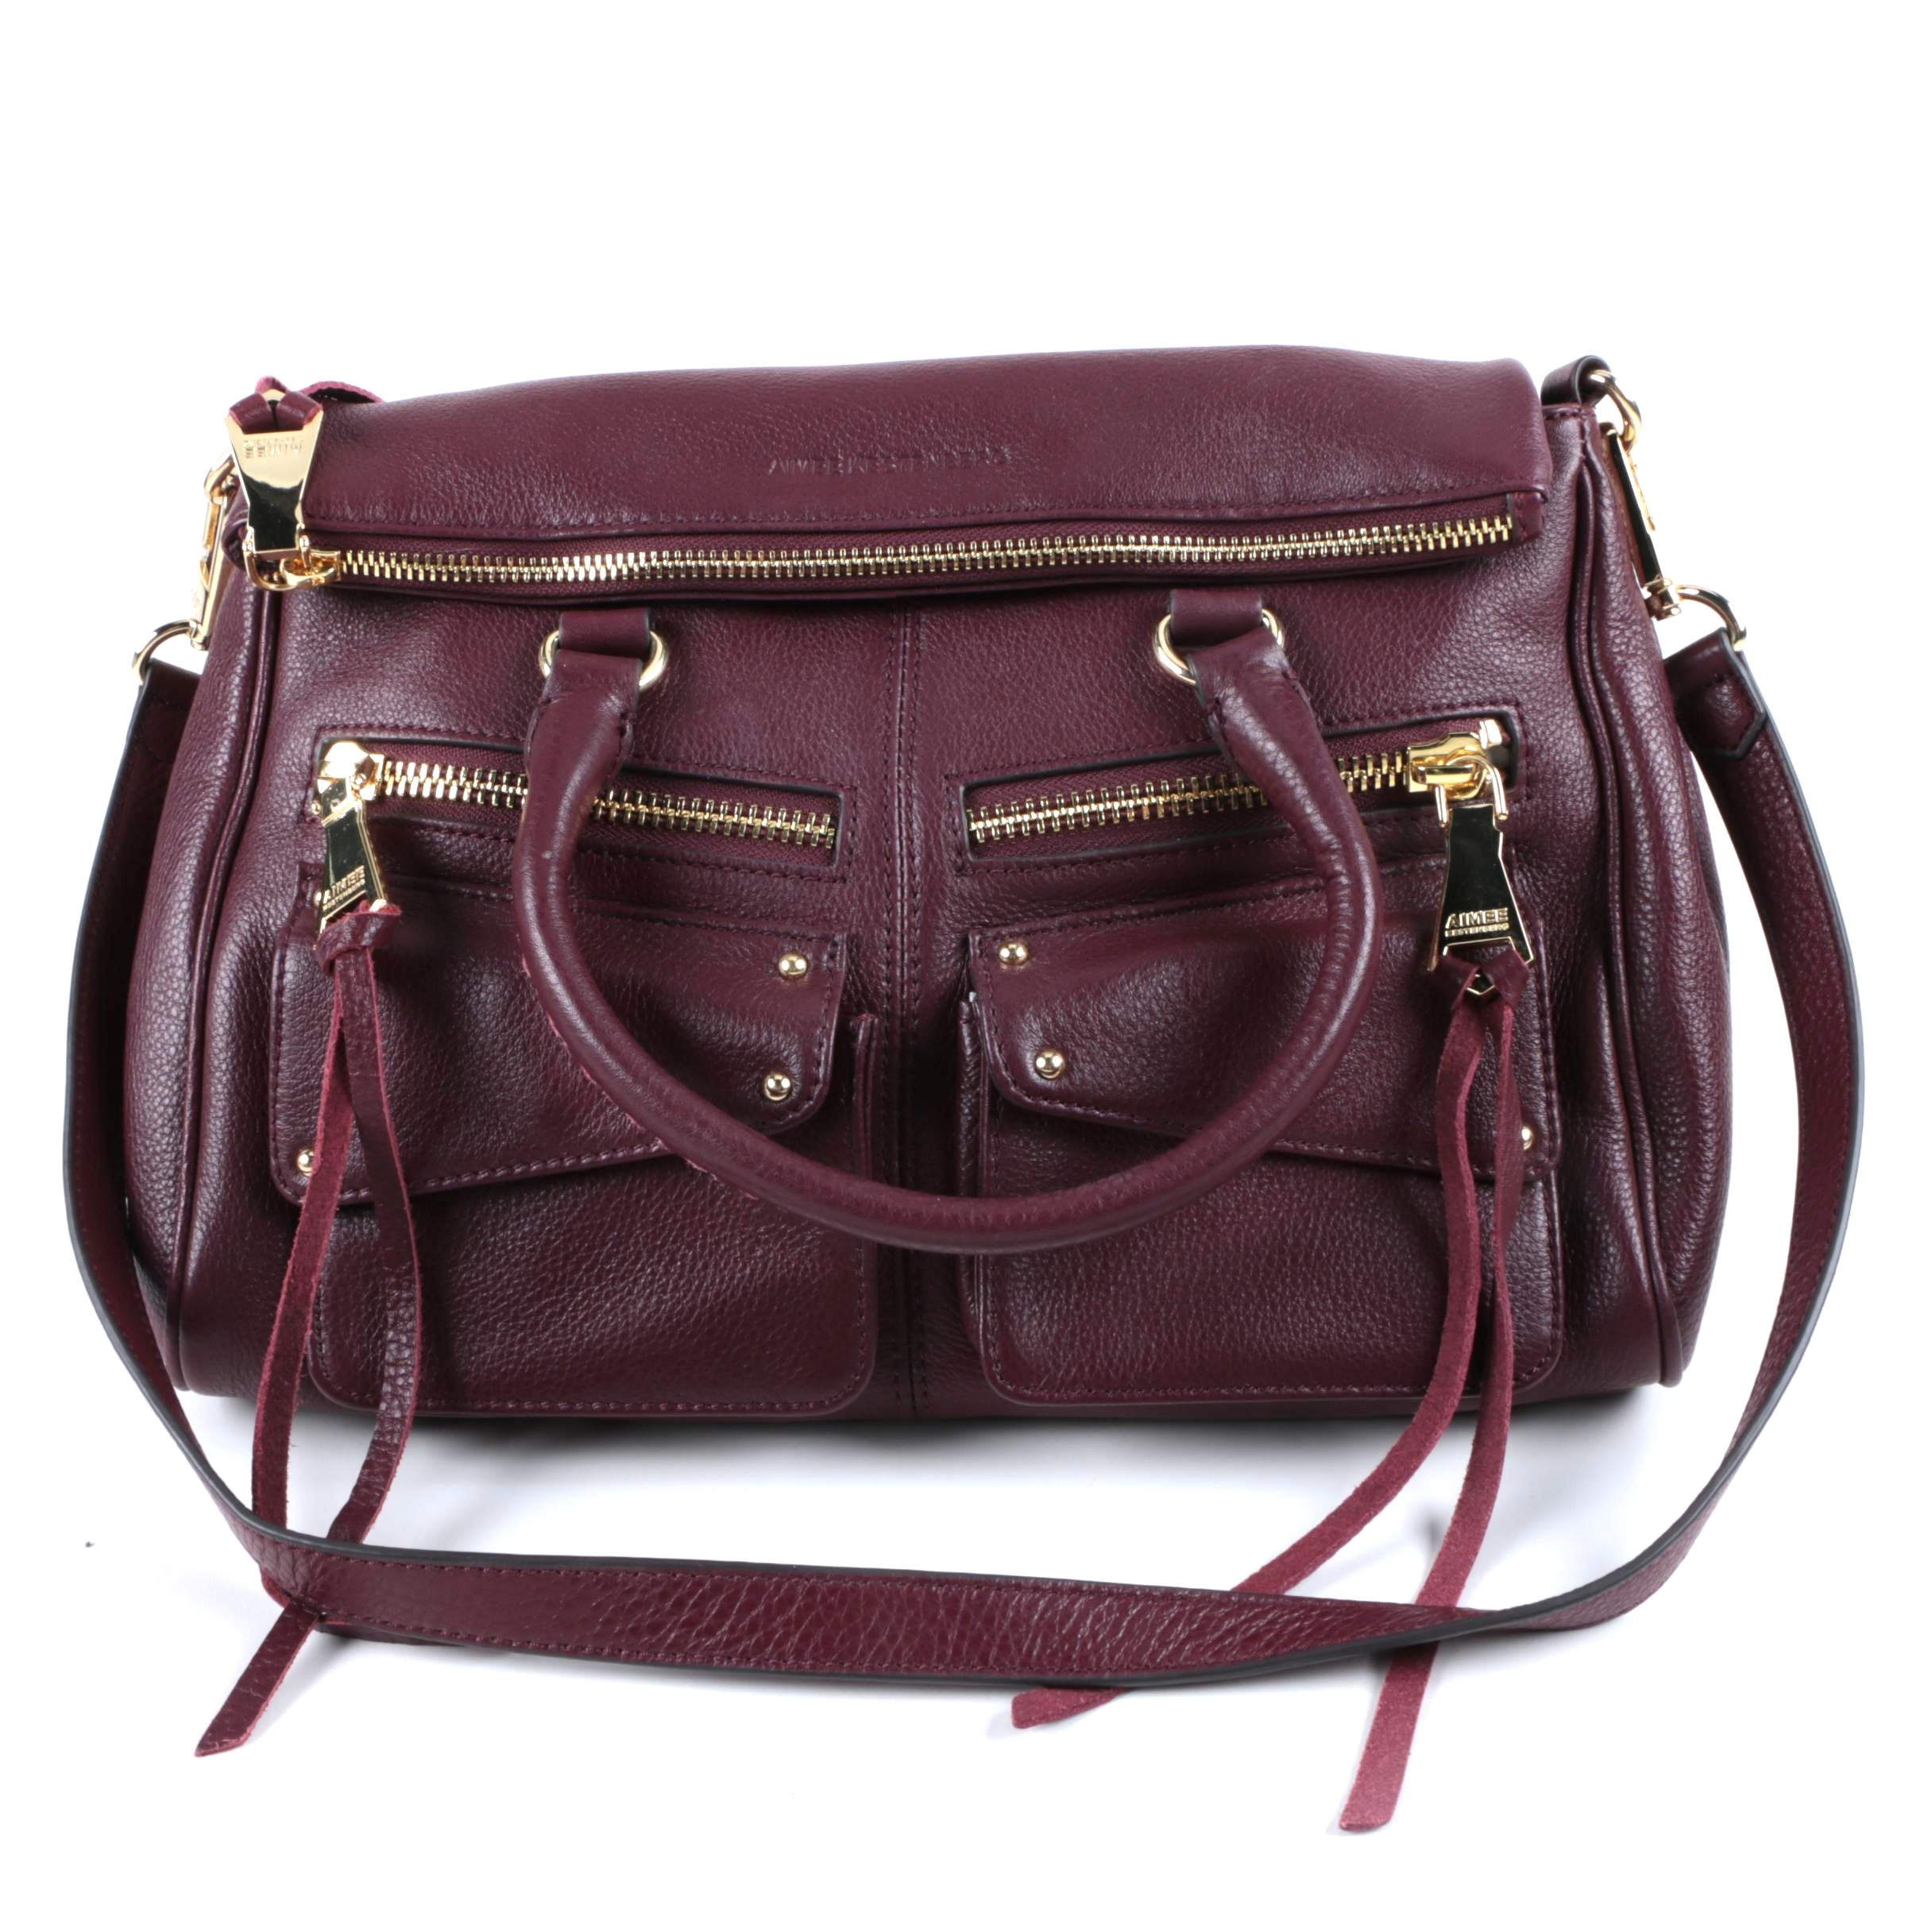 Aimee Kestenberg Collection Maroon Leather Double Zipper Handbag